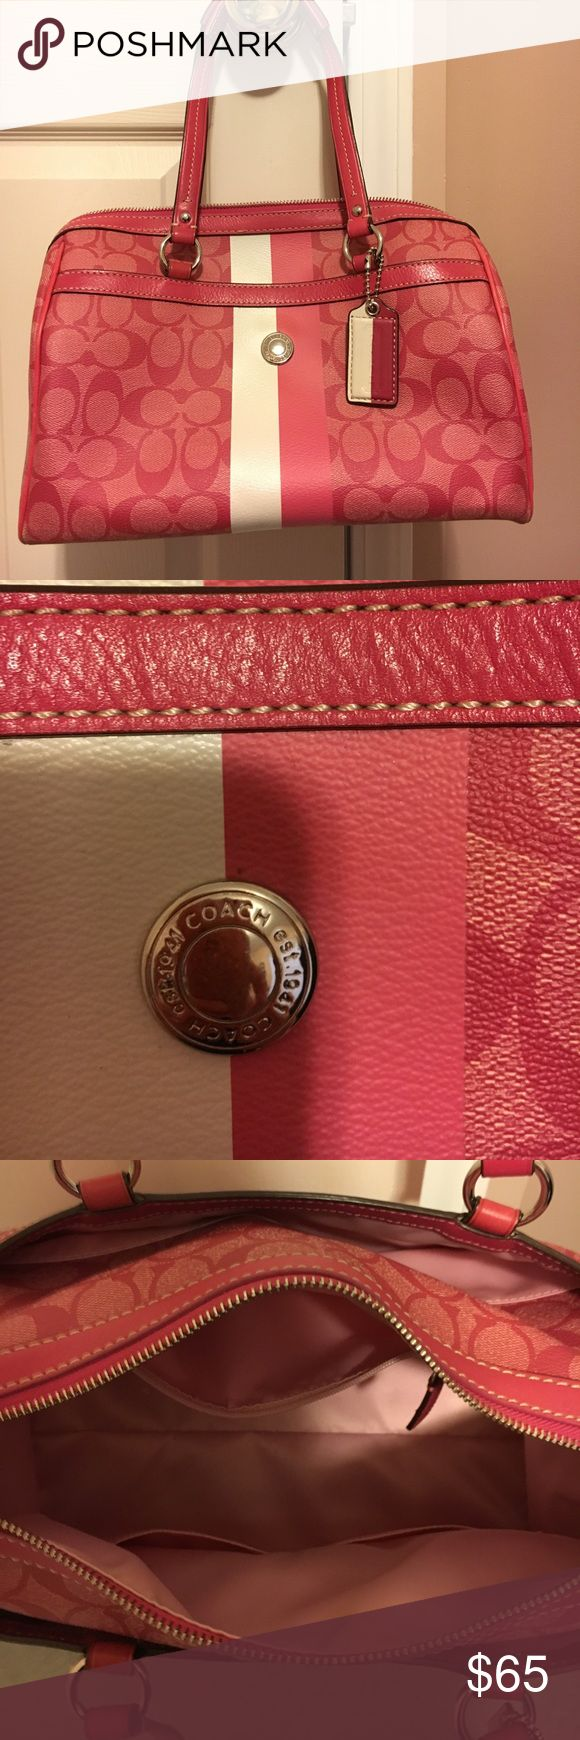 Coach Satchel Purse Beautiful pink Coach satchel.  In great condition!  Smoke free home. Coach Bags Satchels